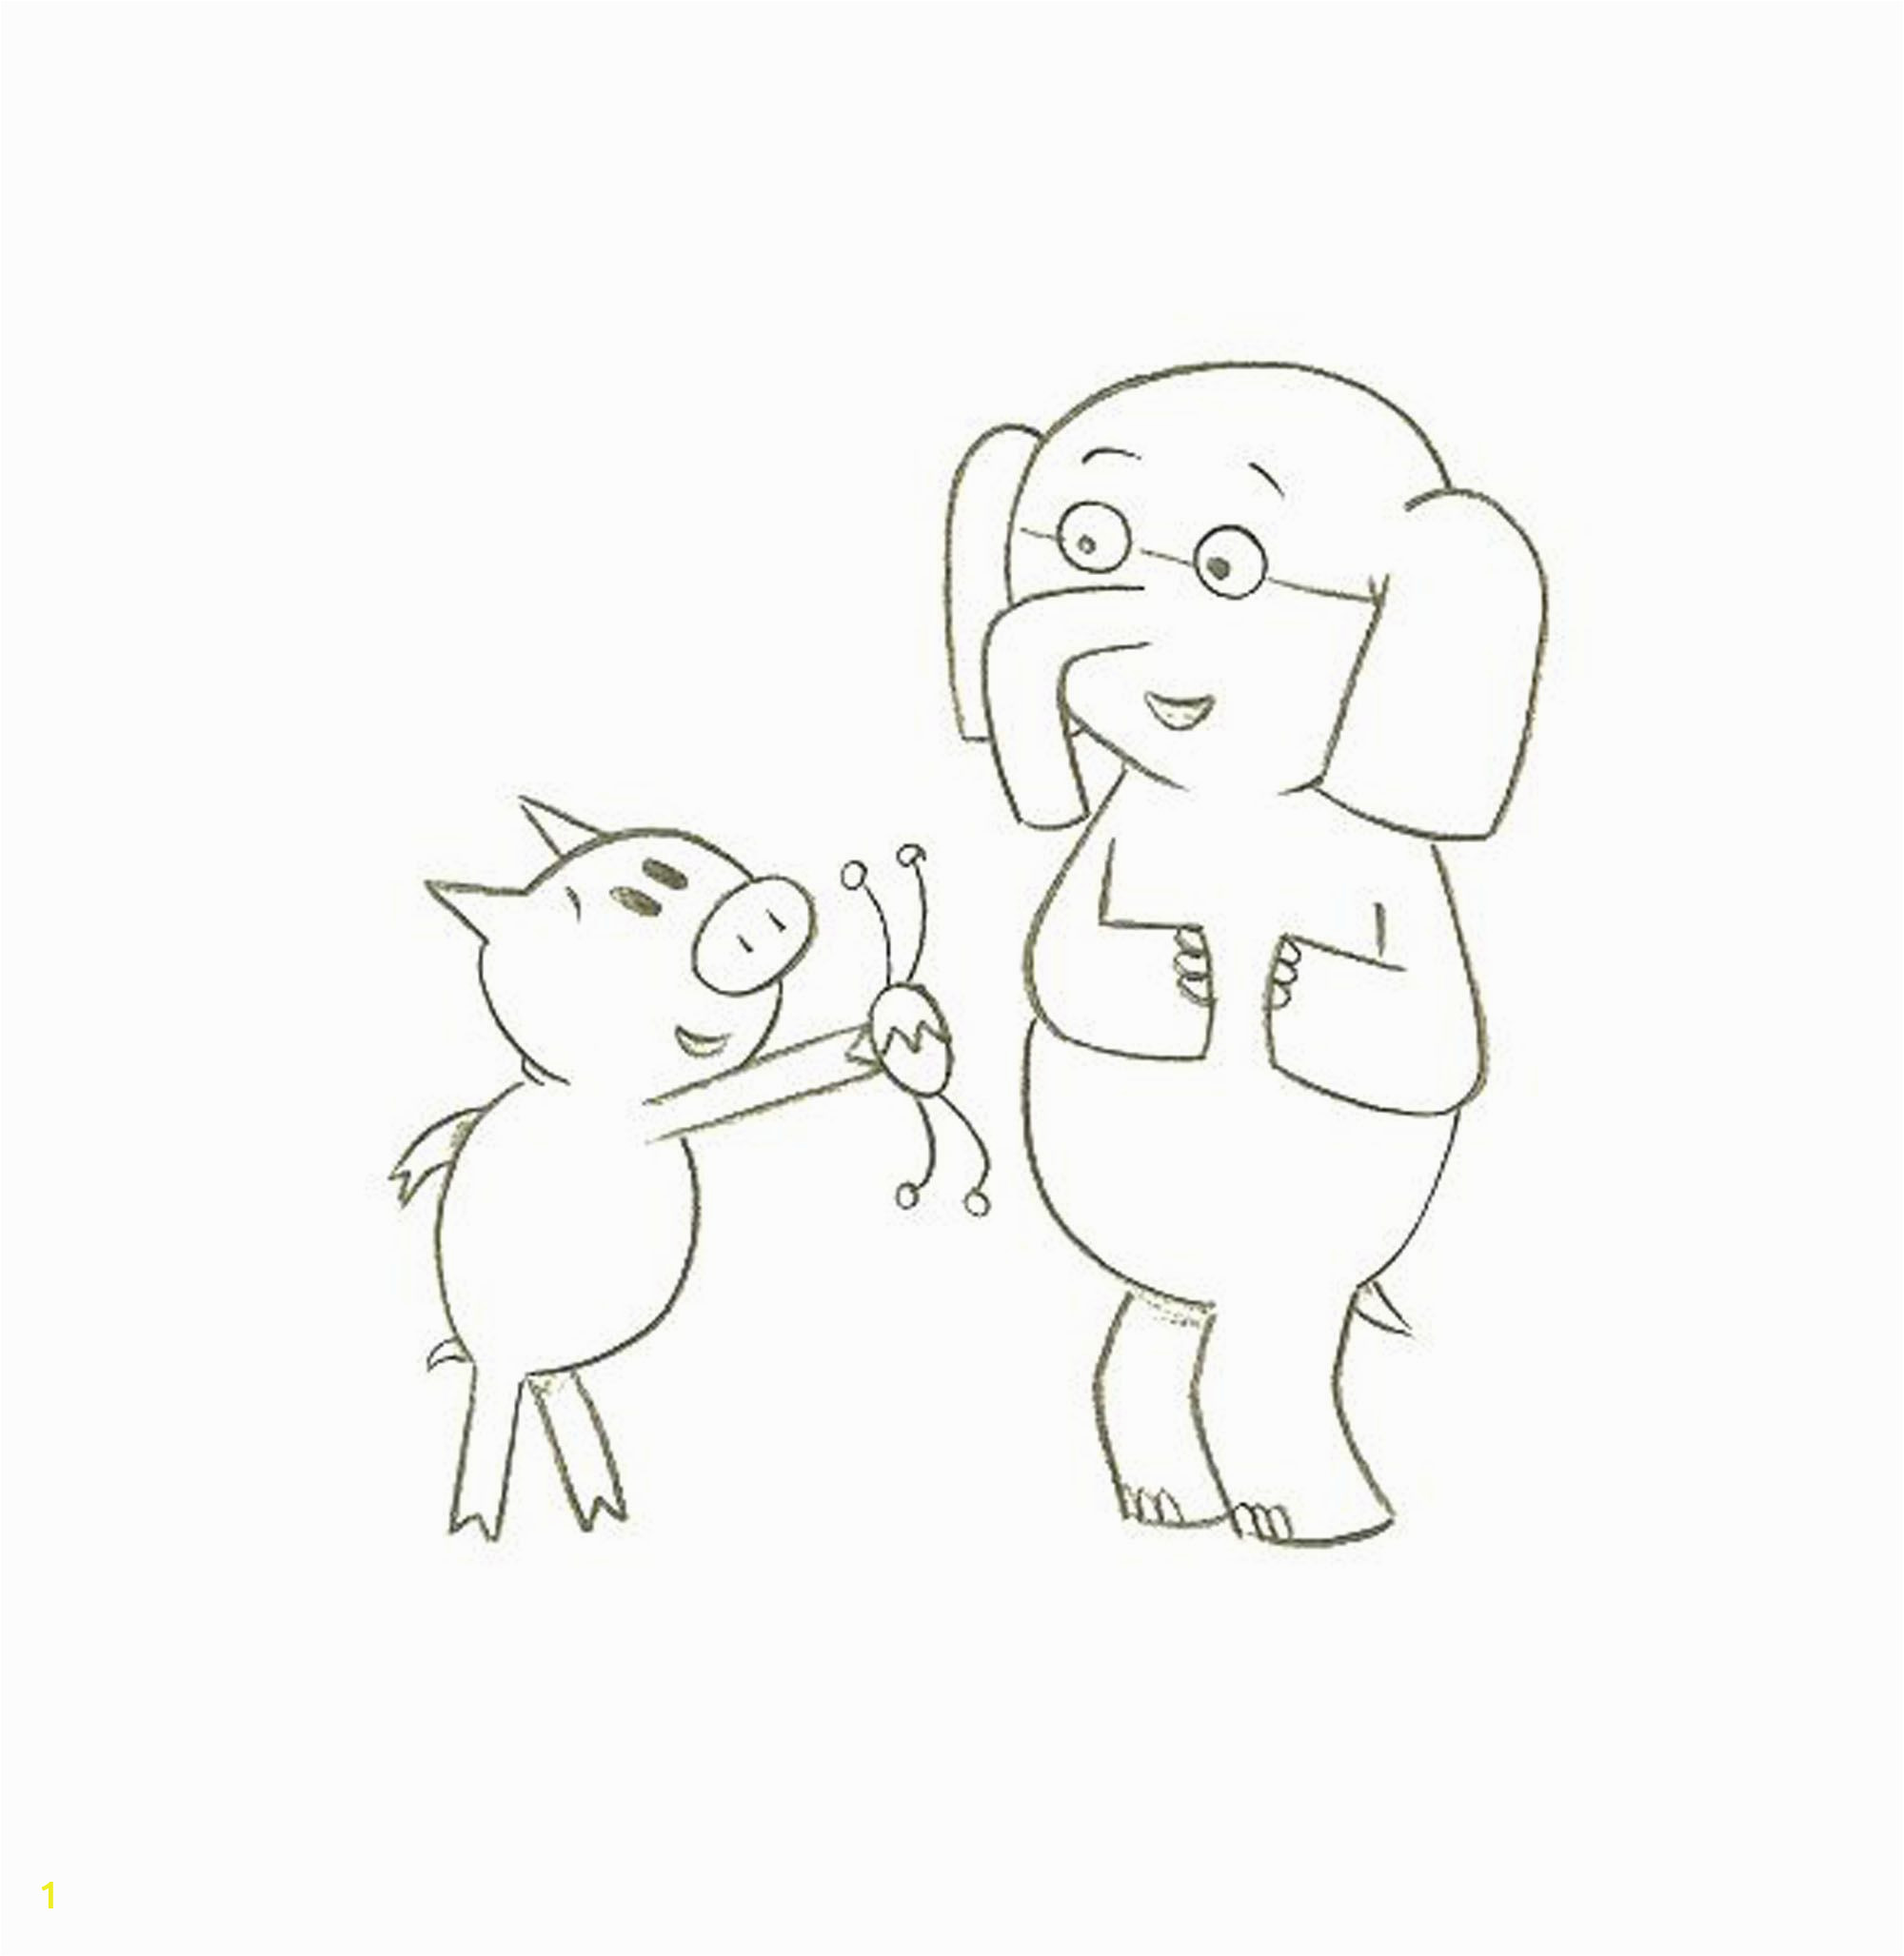 elephant and piggie coloring pages snake adult book designs bell ultraman activity club for adults digital underwater squidward umbrella preschool bird journal chase page year olds